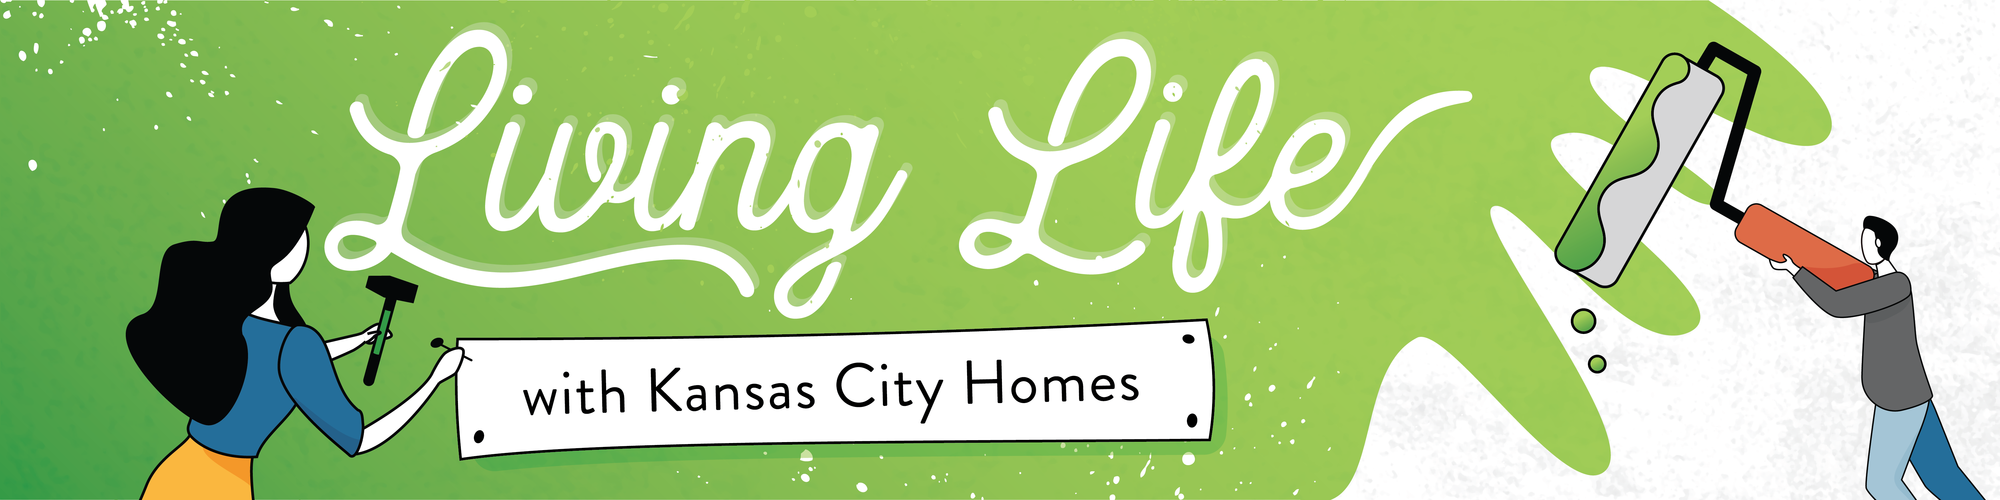 Living Life with Kansas City Homes | Kansas City Homes